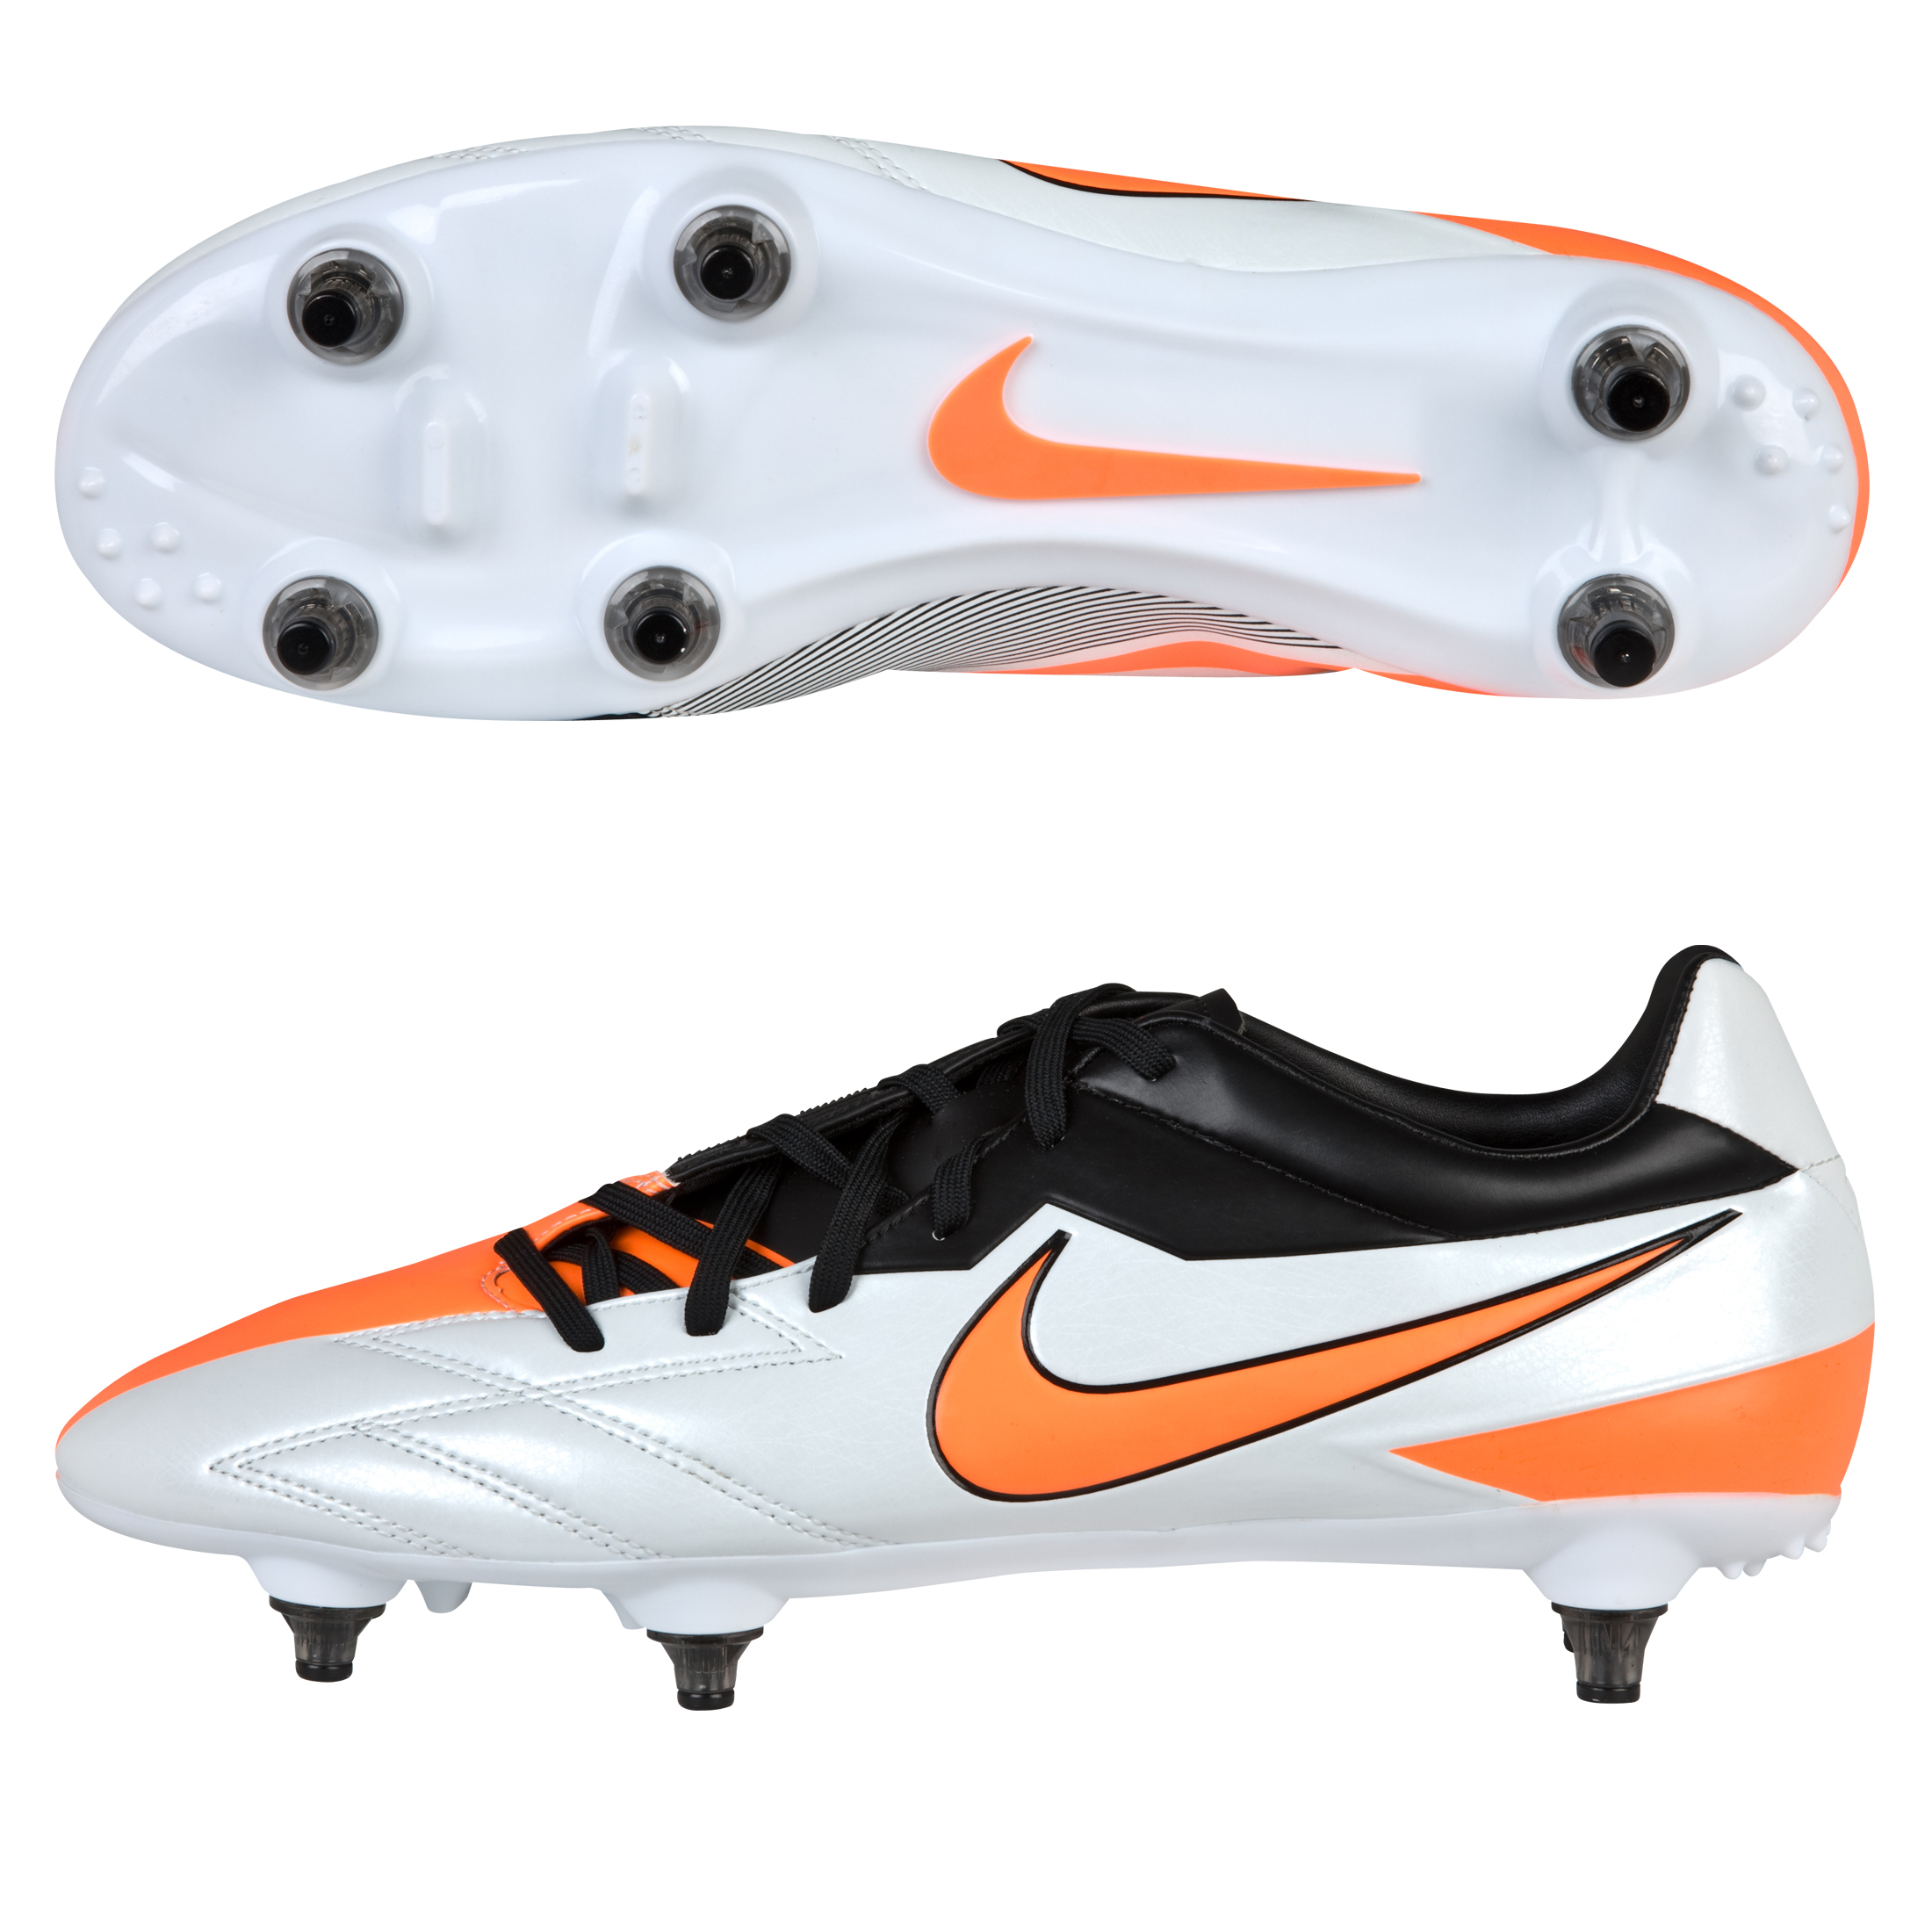 Nike Total90 Strike IV Soft Ground Football Boots - Windchill/Total Orange/Black